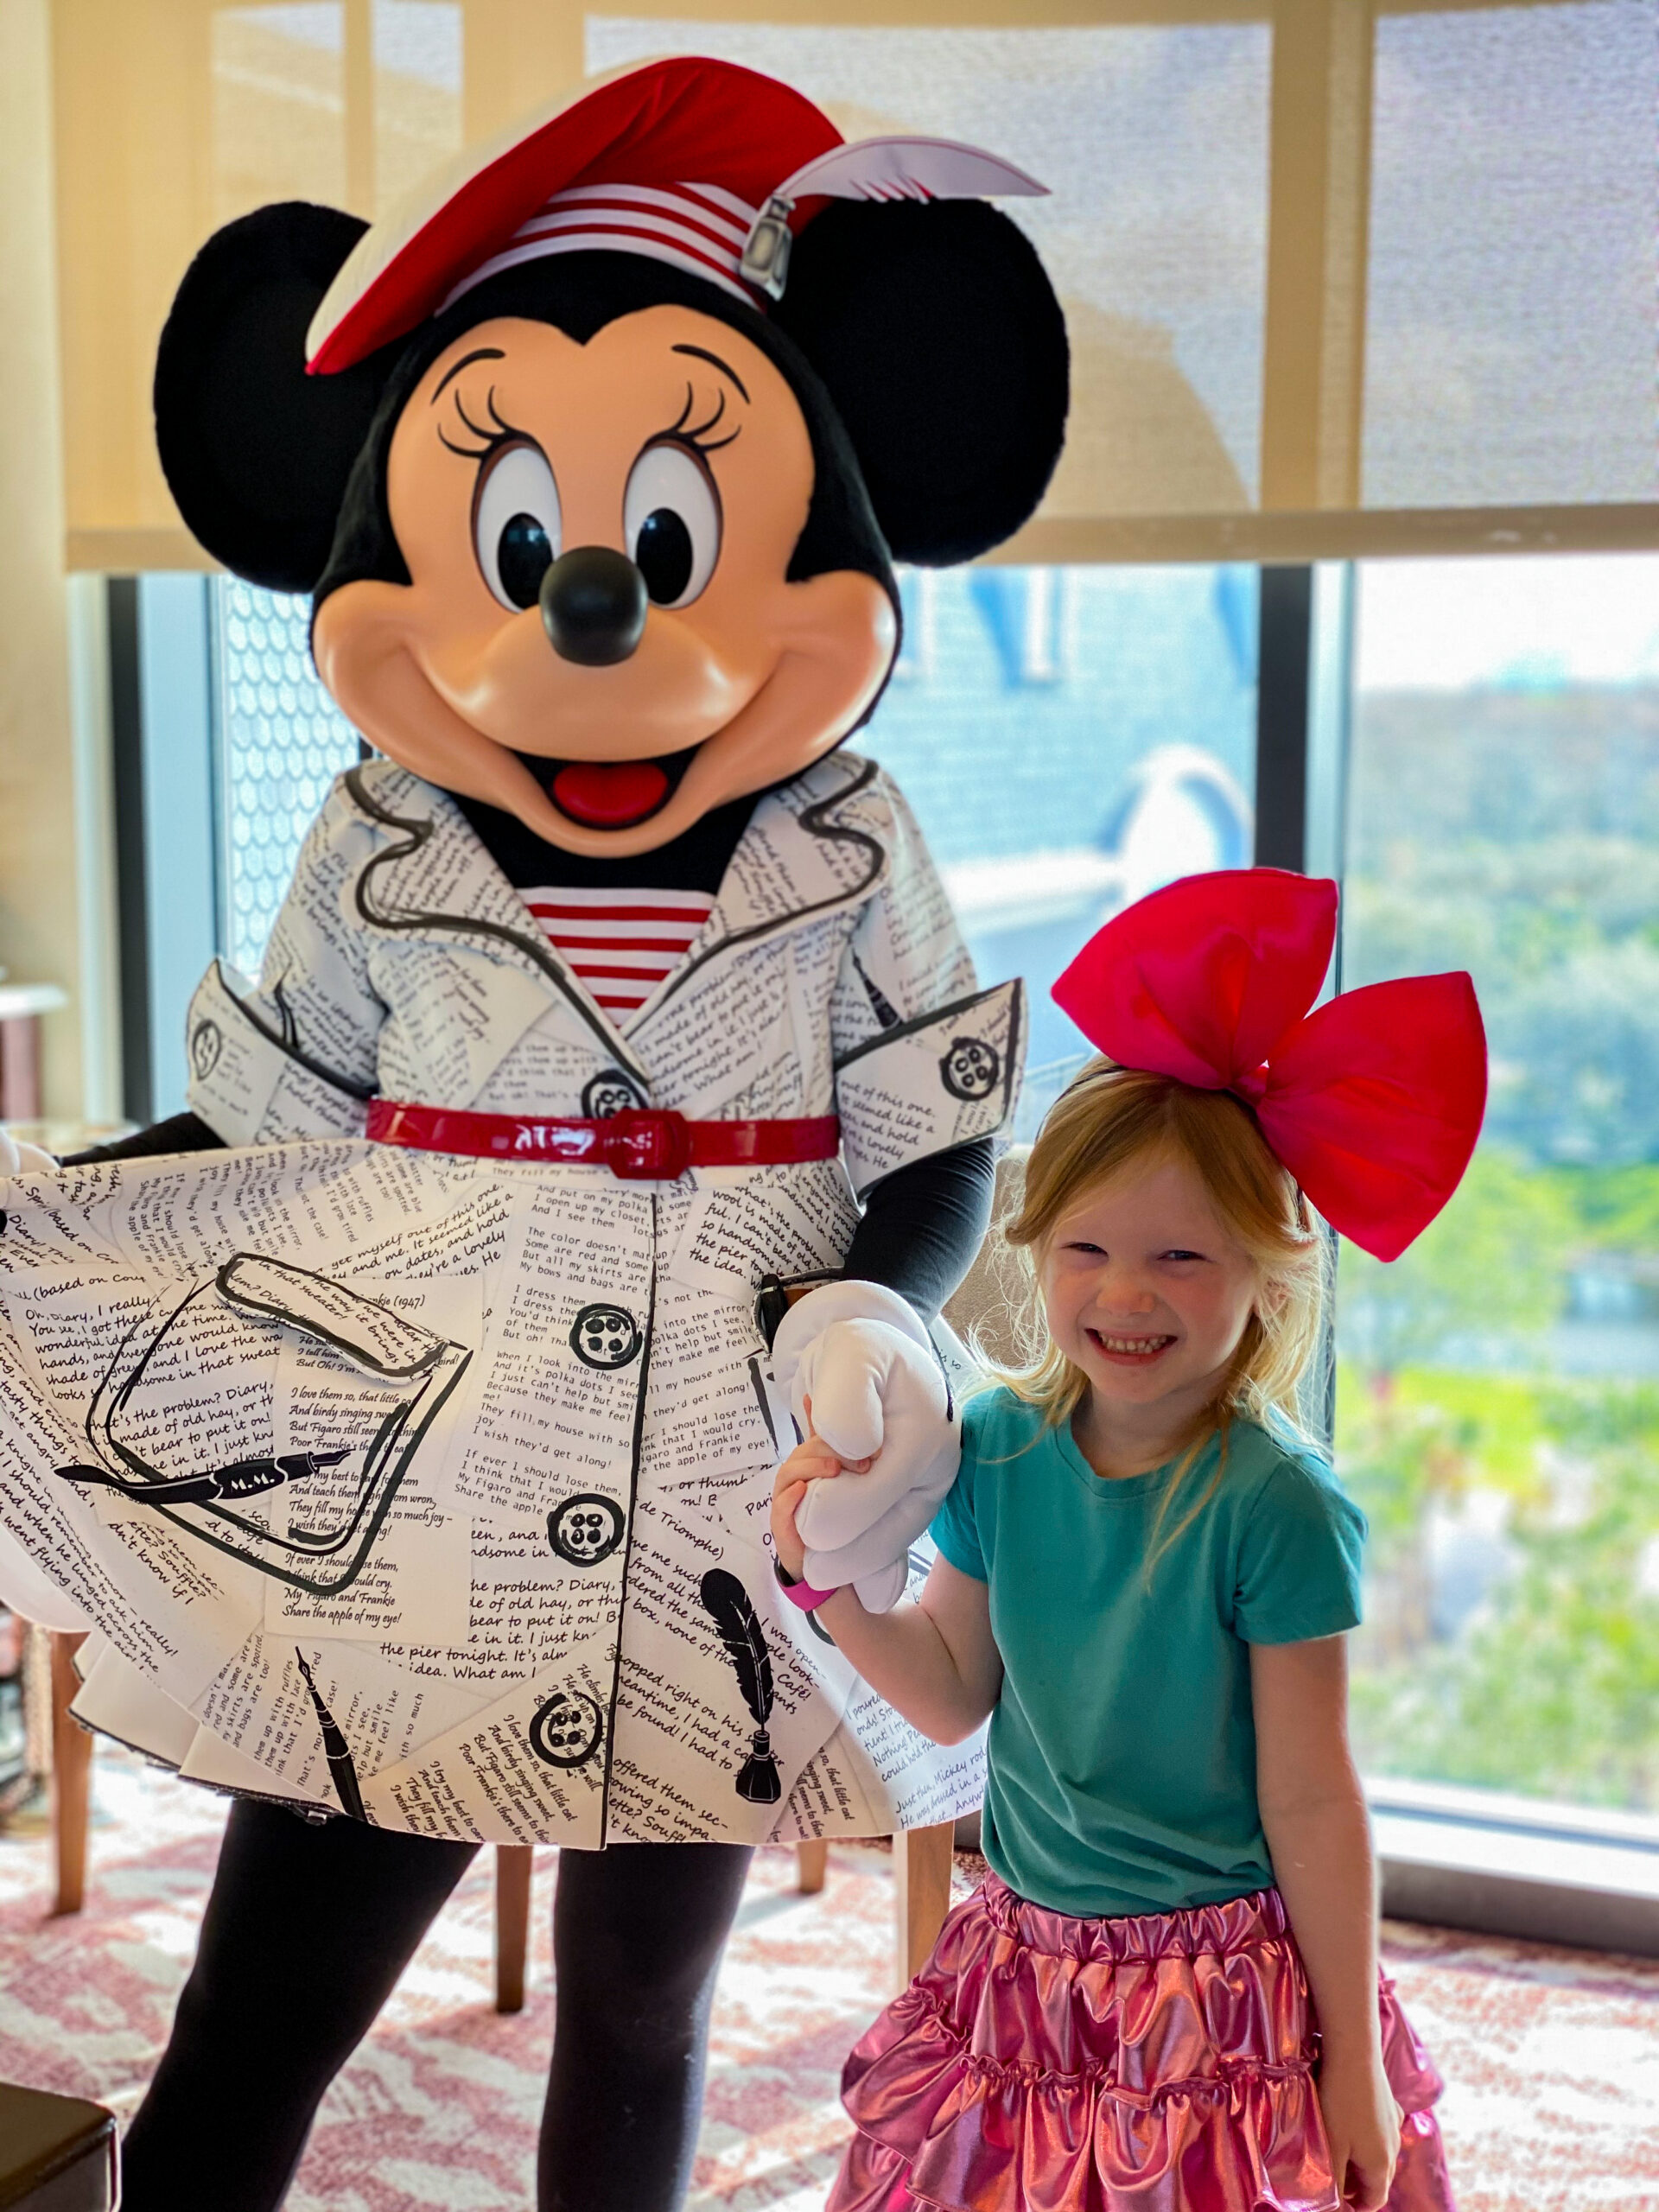 Minnie in her Topolino's Terrace outfit is ADORABLE!